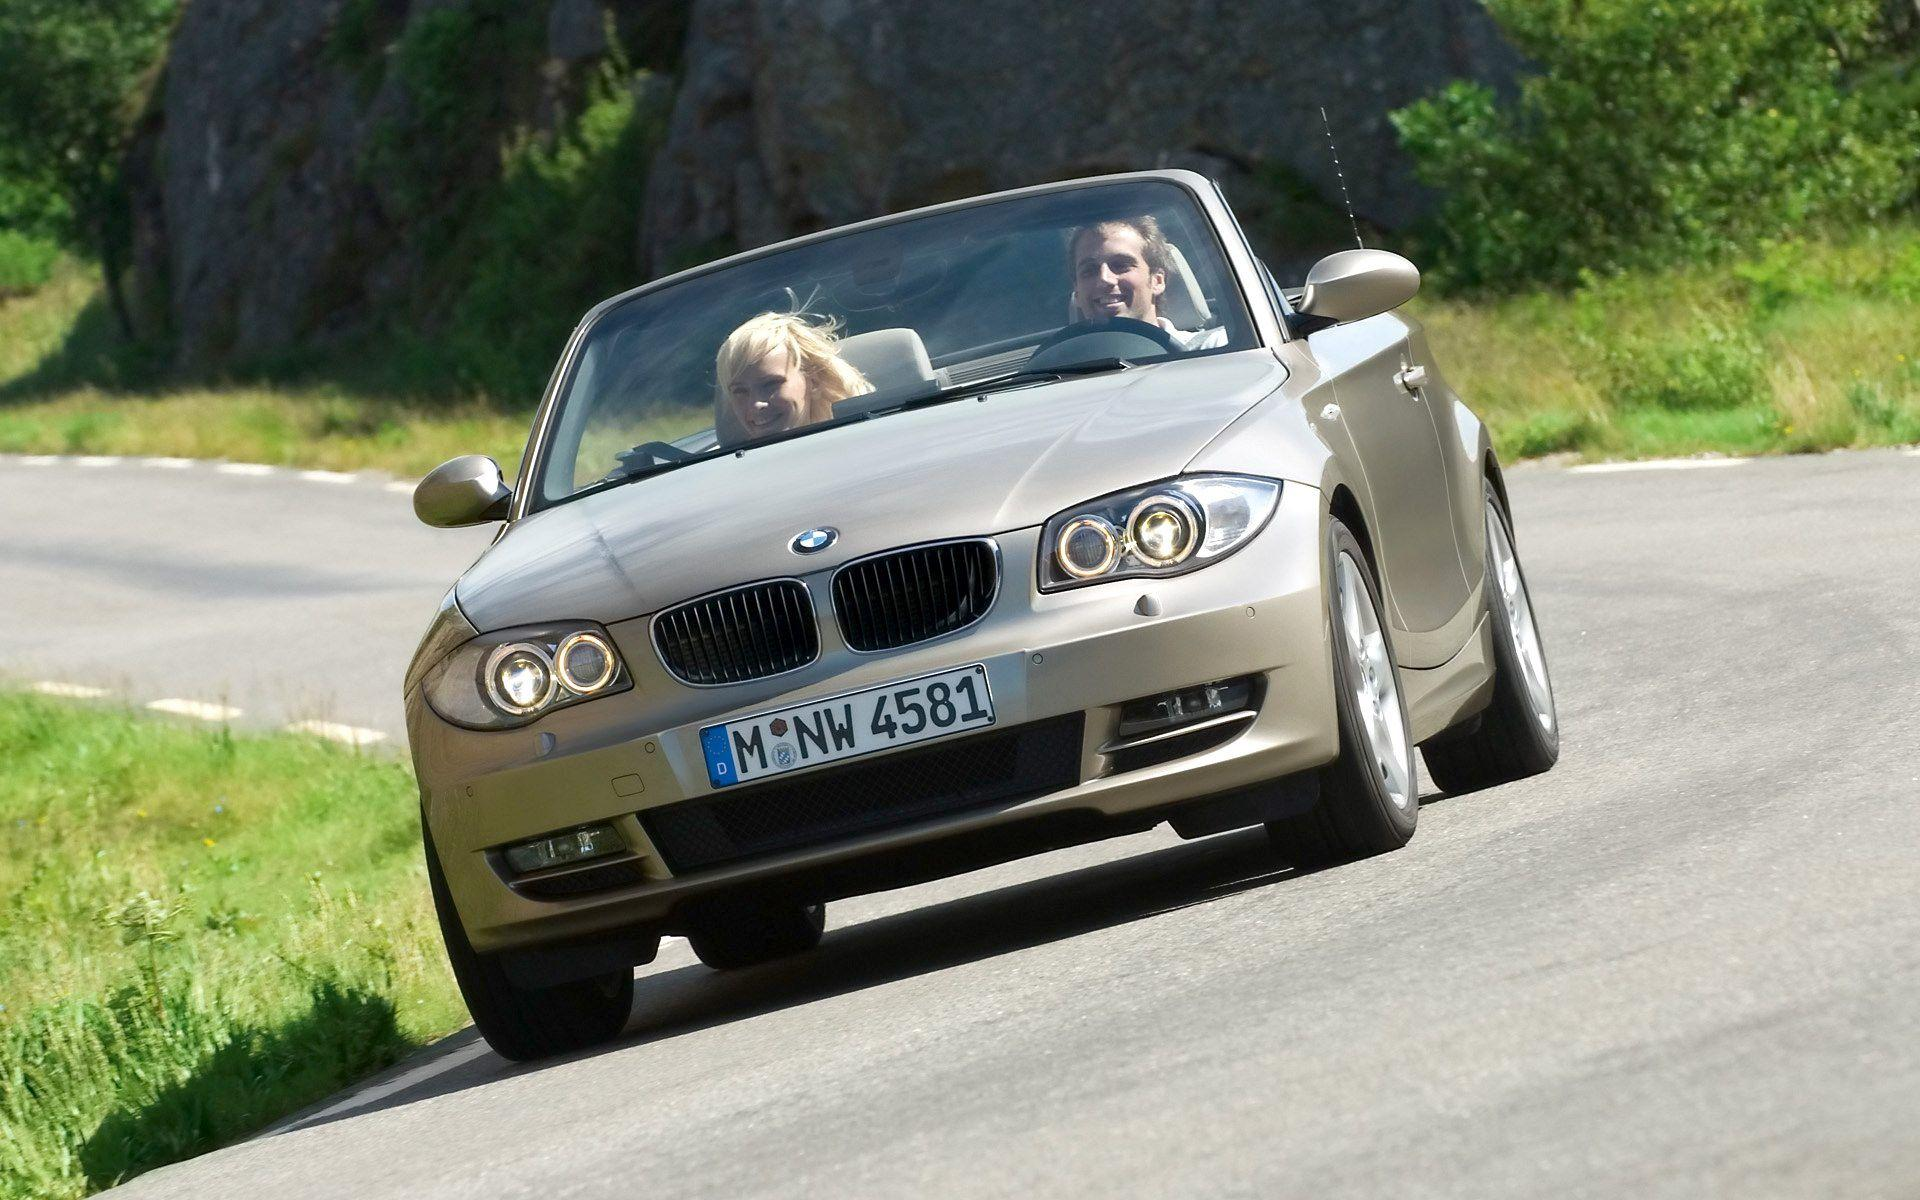 2008 BMW 1 Series Convertible Wallpaper 12 - 1920x1200